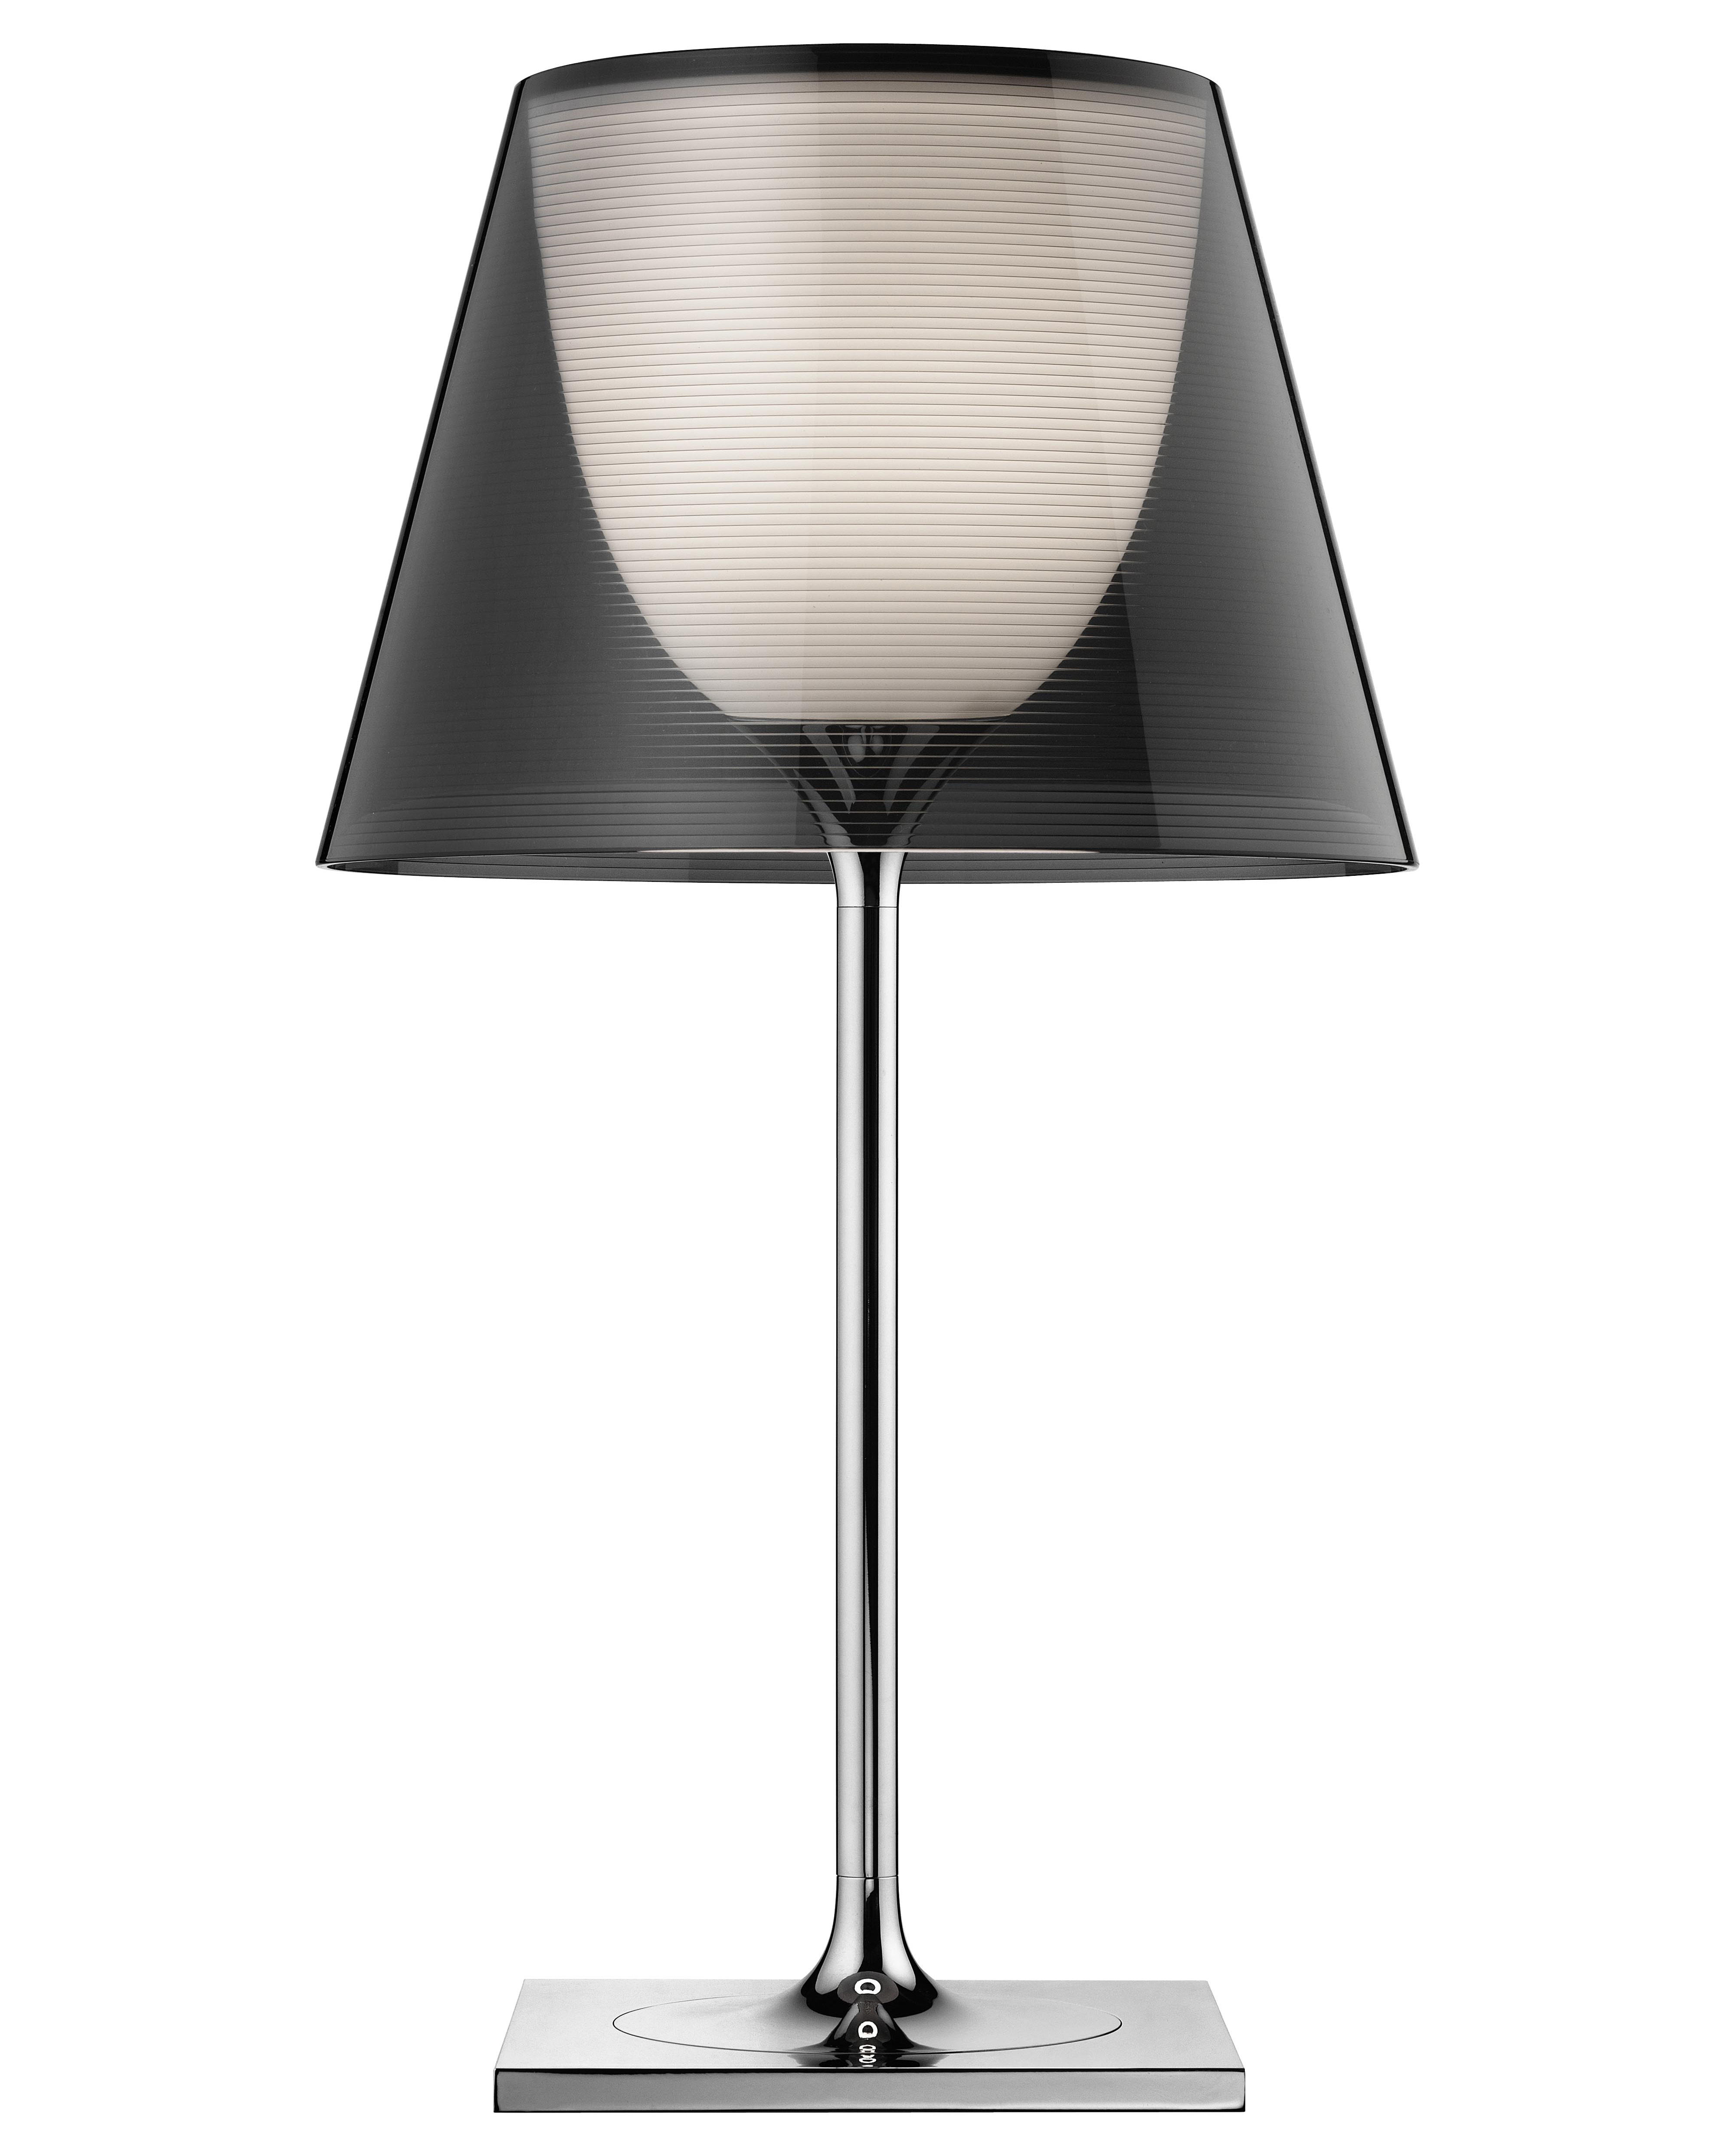 K Tribe T1 Table Lamp H 56 Cm Smokey By Flos Made In Design Uk